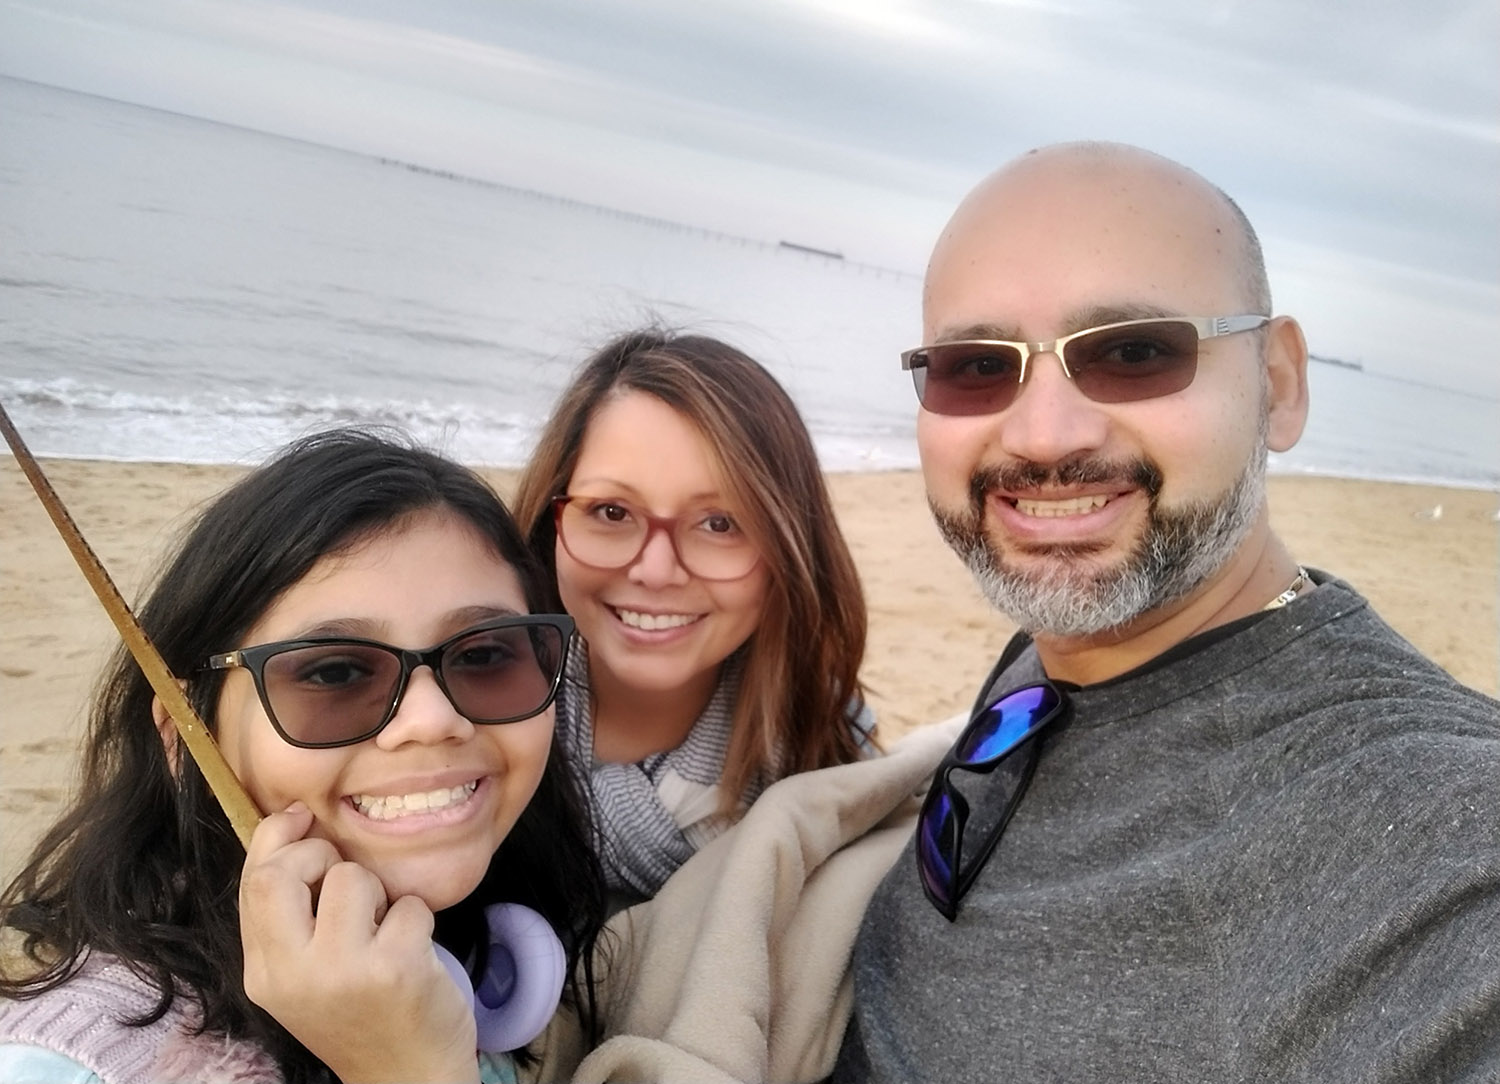 Leidimar Ramirez, center, lives in Newport News, Virginia, with her husband Ruben and their 11-year-old daughter Carmen. Ruben and Carmen will be in attendance tonight when Leidimar receives a master's degree in Spanish education from UNK. (Courtesy photos)